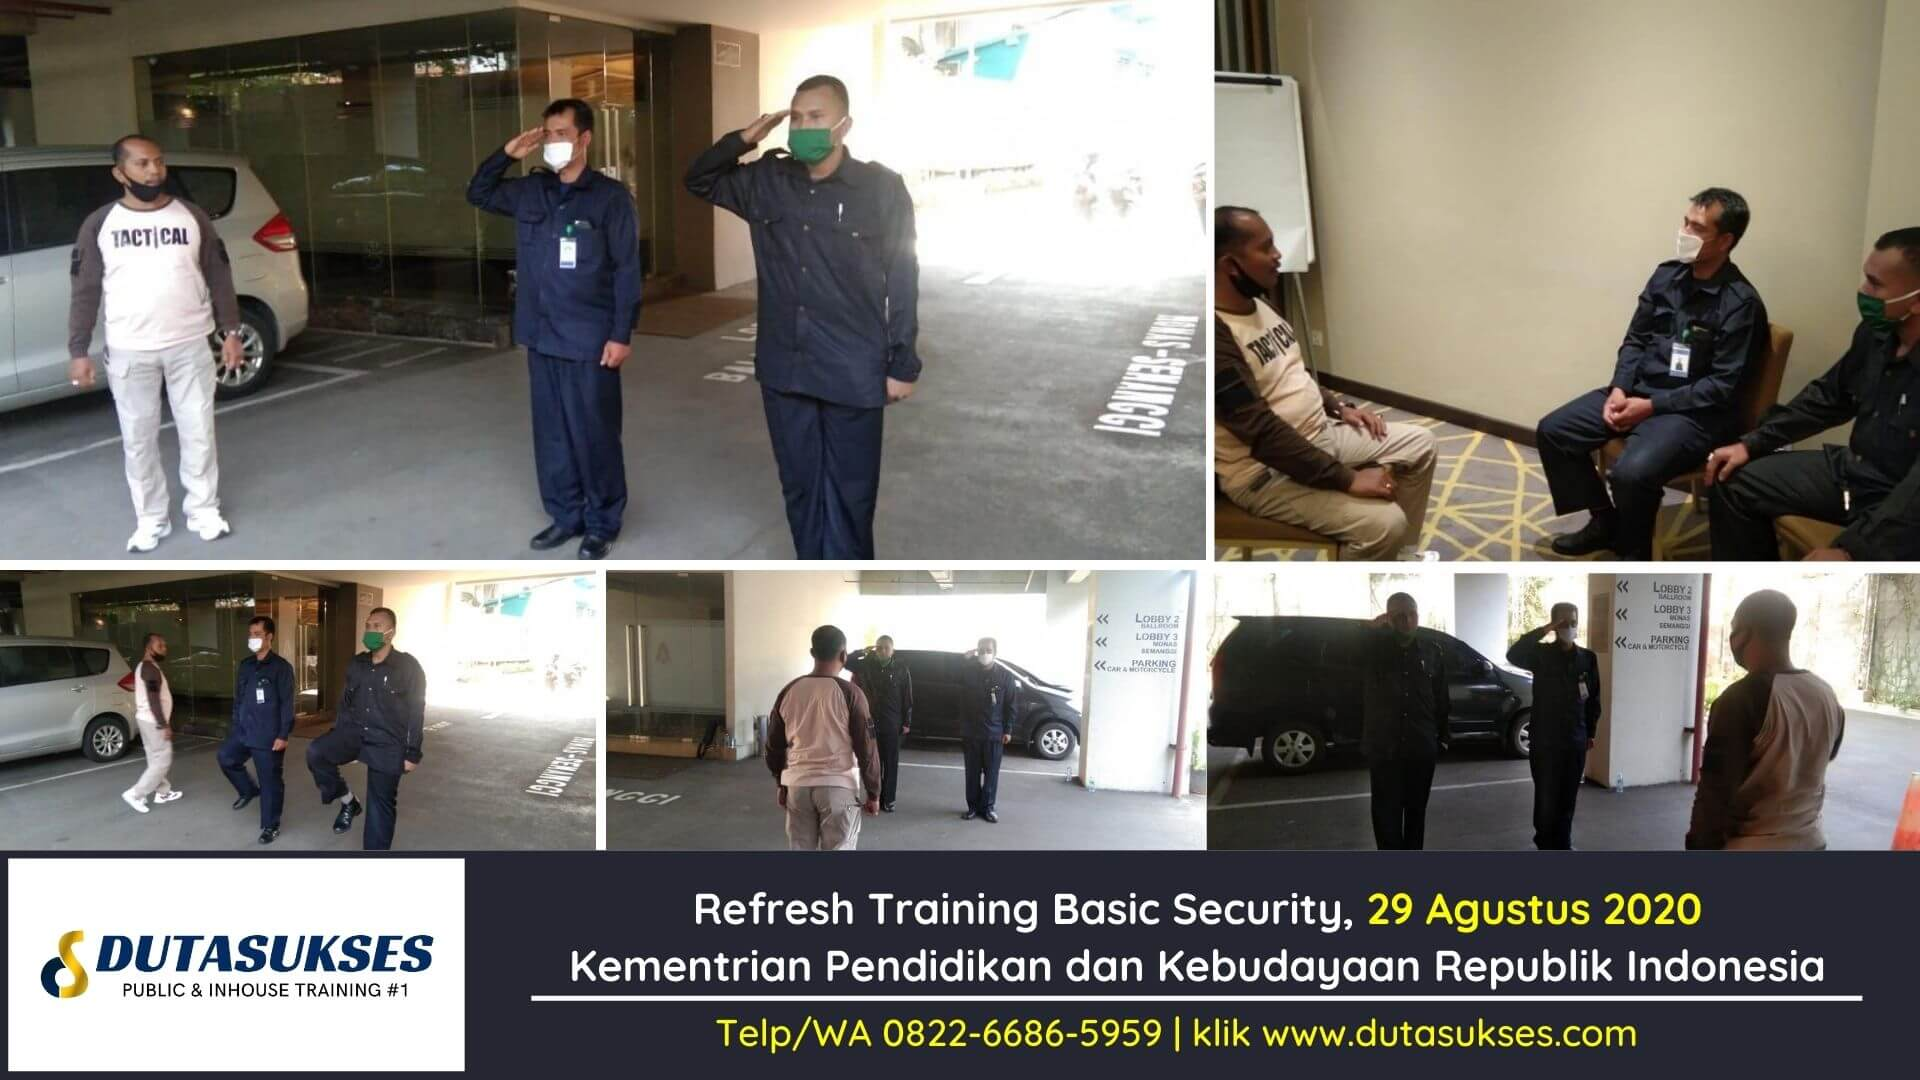 Refresh Training Basic Security, Pelatihan Satpam, Training Security Perusahaan